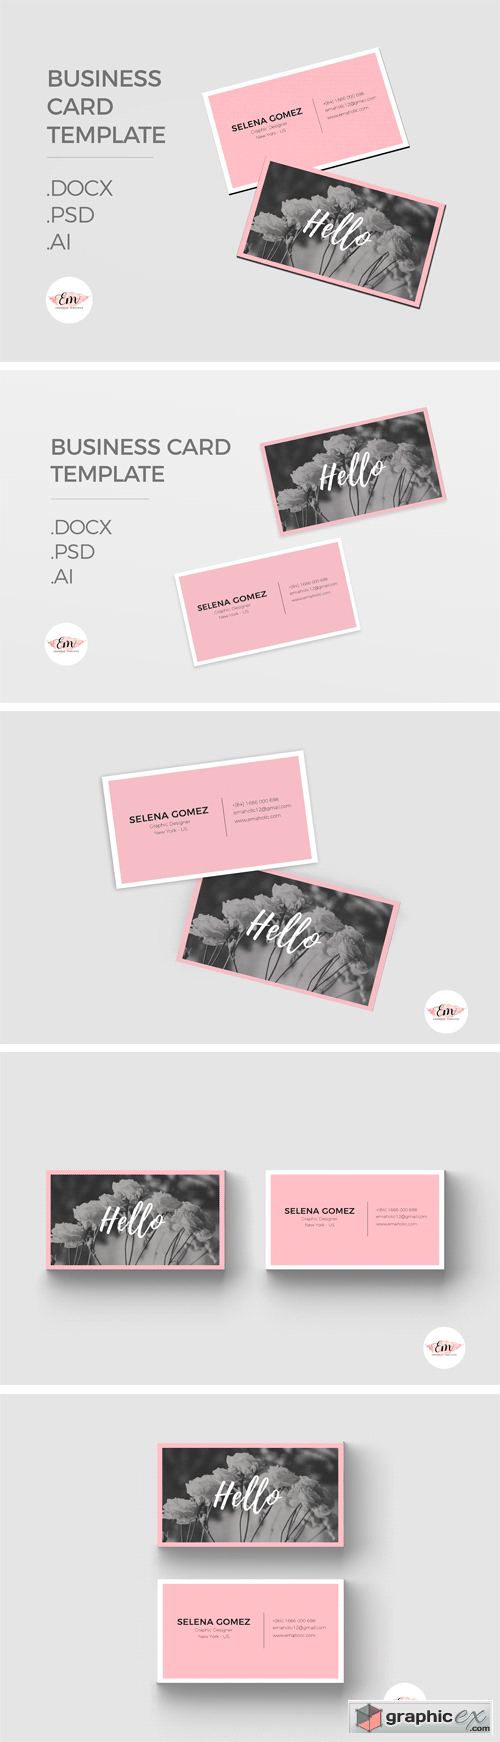 Elegant Business Card Template 1340846